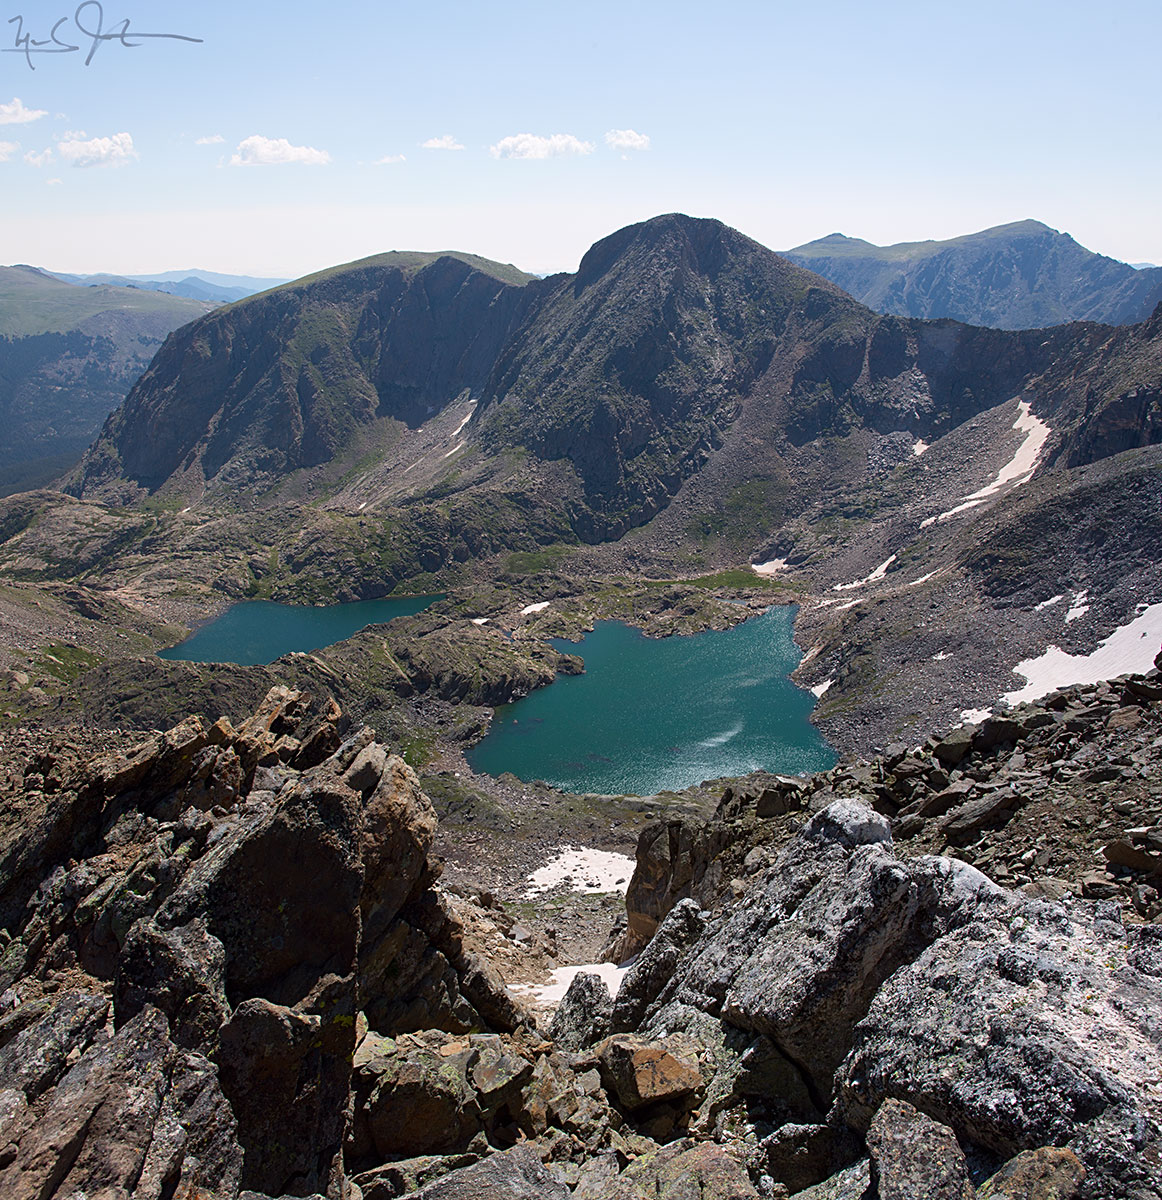 View from the top of Mt. Ida [elevation 12,889 ft]: Azure Lake and Inkwell Lake, with Mt. Julian and Terra Tomah rising up behind, Rocky Mountain National Park.